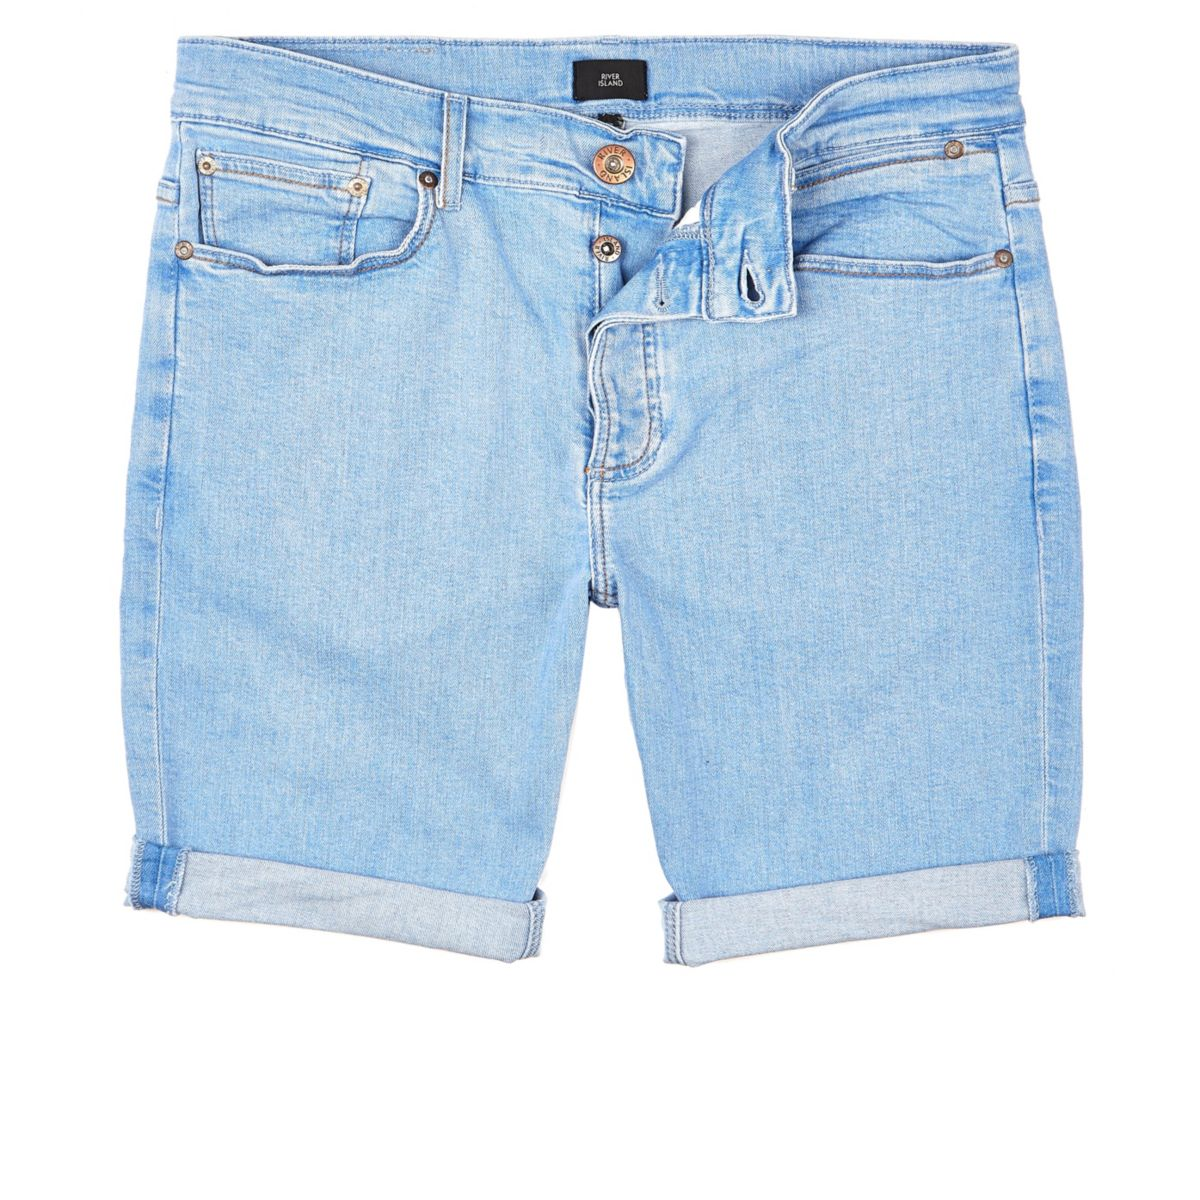 Light blue denim shorts 90s skinny BPZBqaFr